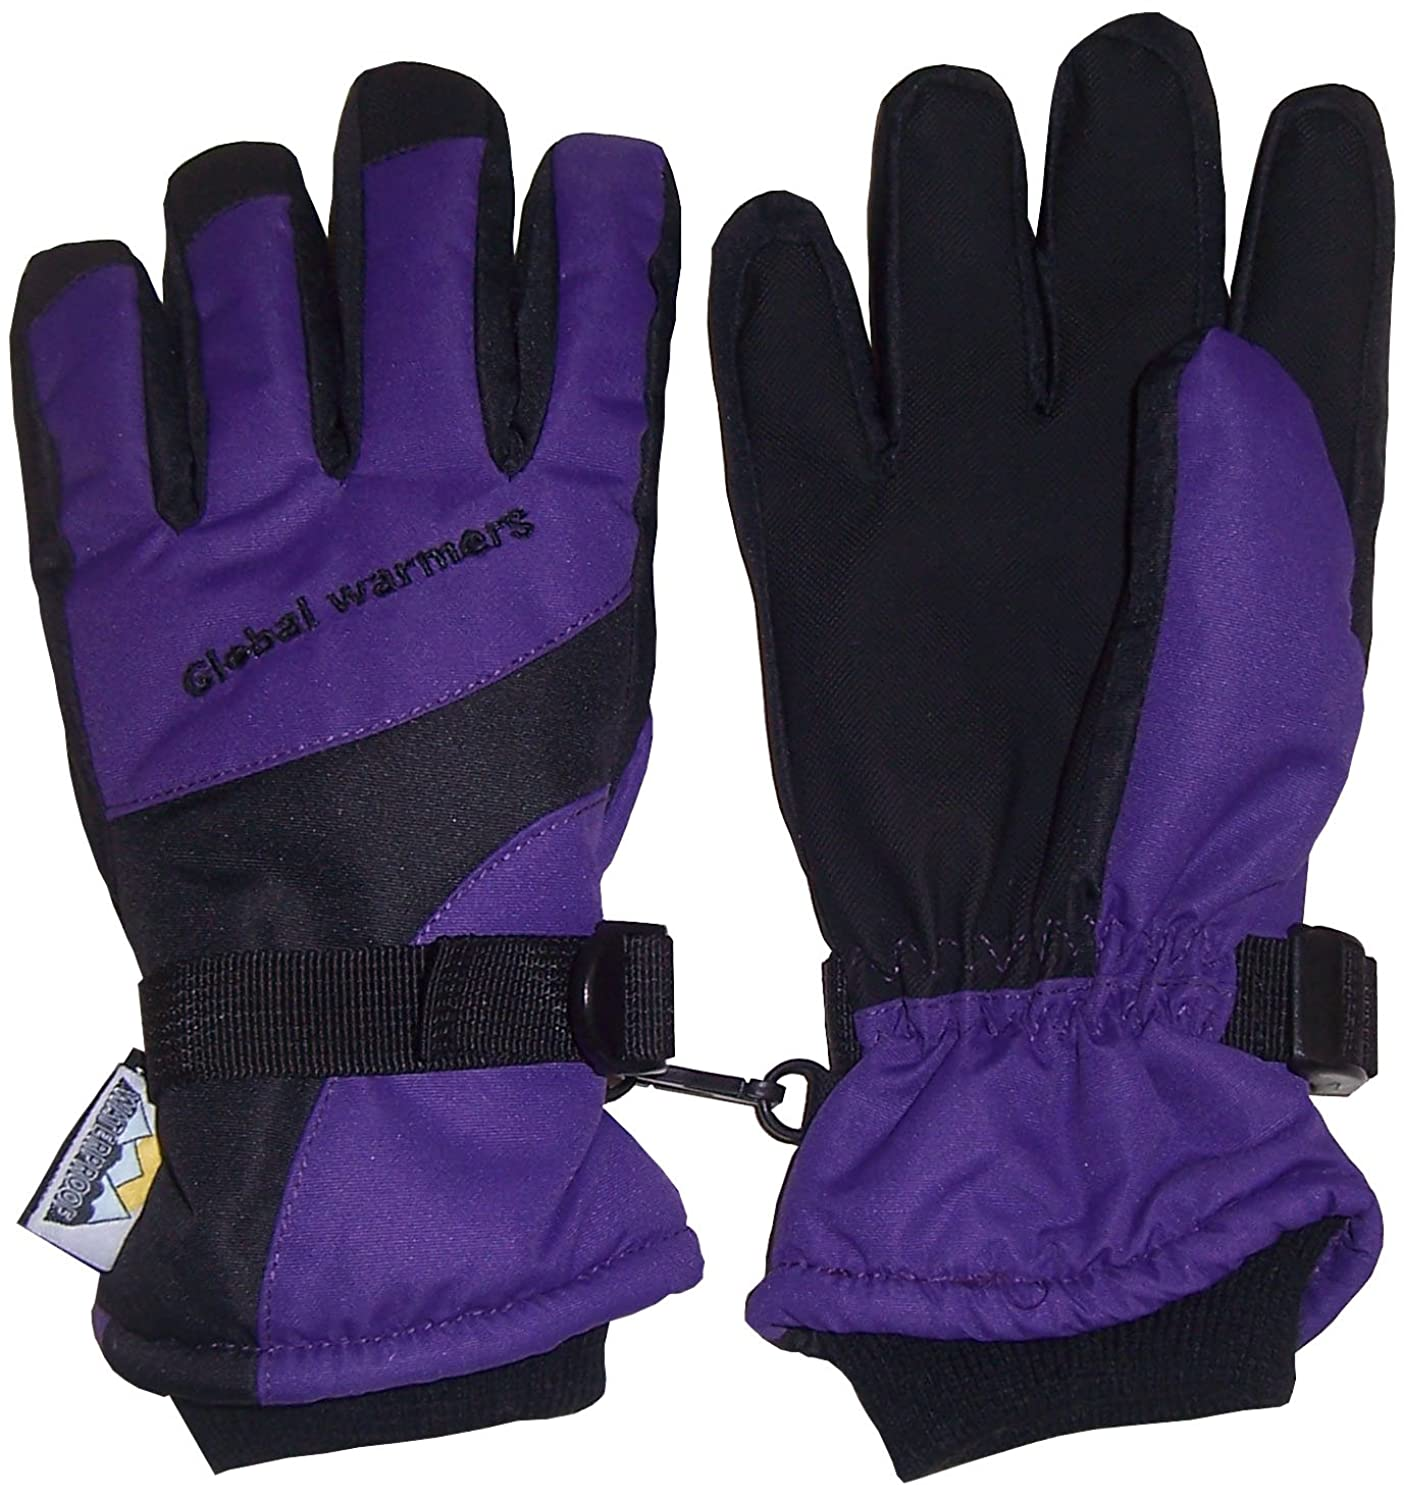 Mens gloves with mitten flap - Top 10 Best Women S Winter Gloves For Touchscreen Phones 2016 2017 On Flipboard